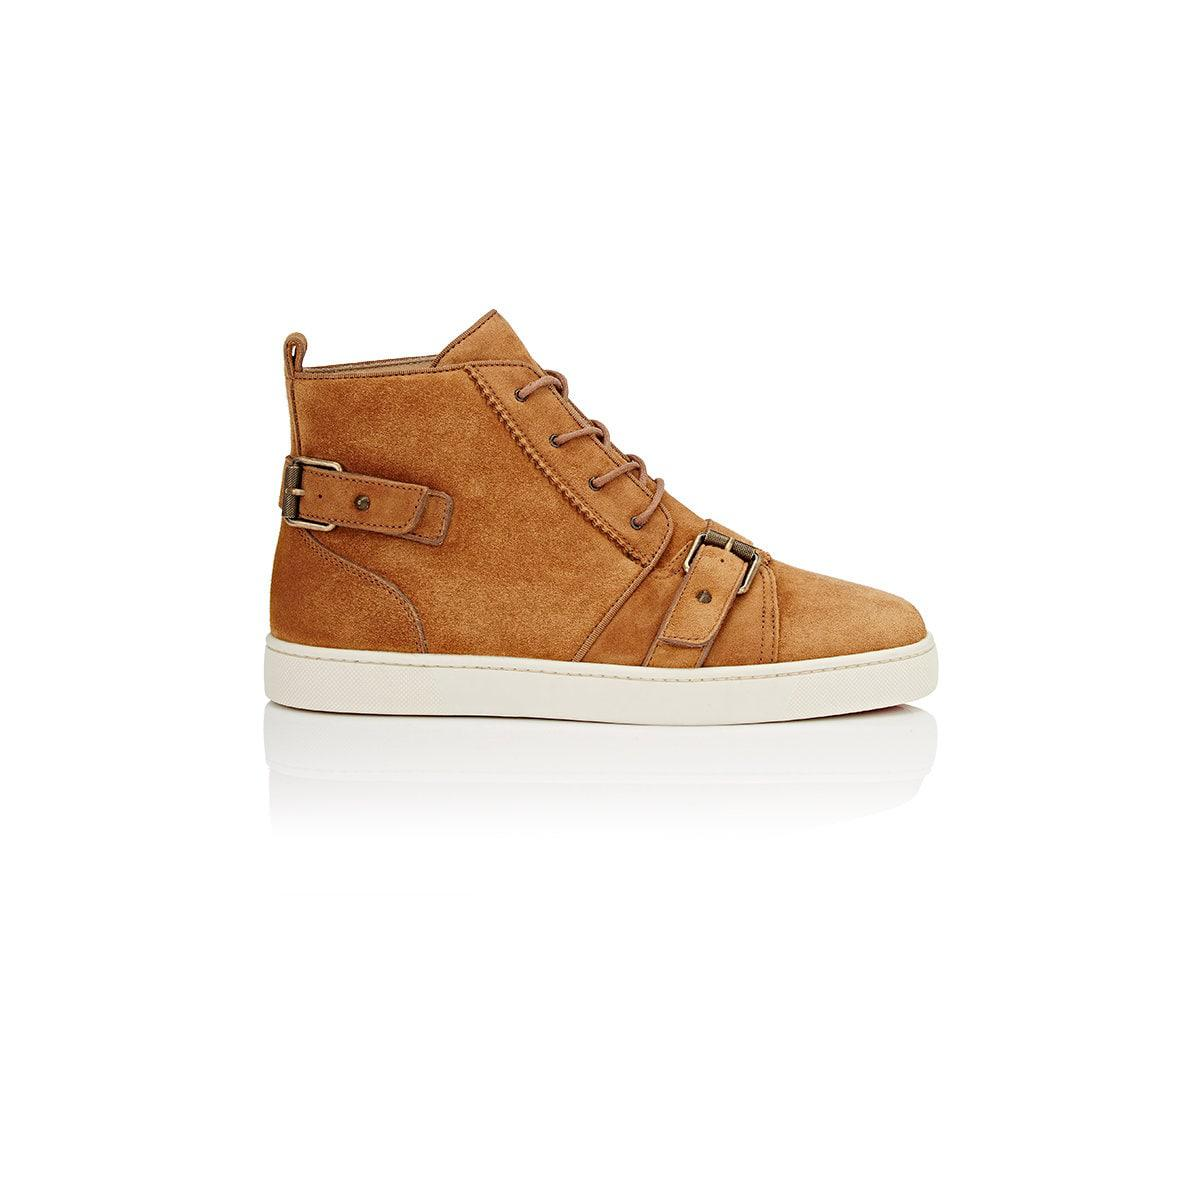 12eac2f1060 Lyst - Christian Louboutin Nono Strap Suede Sneakers for Men